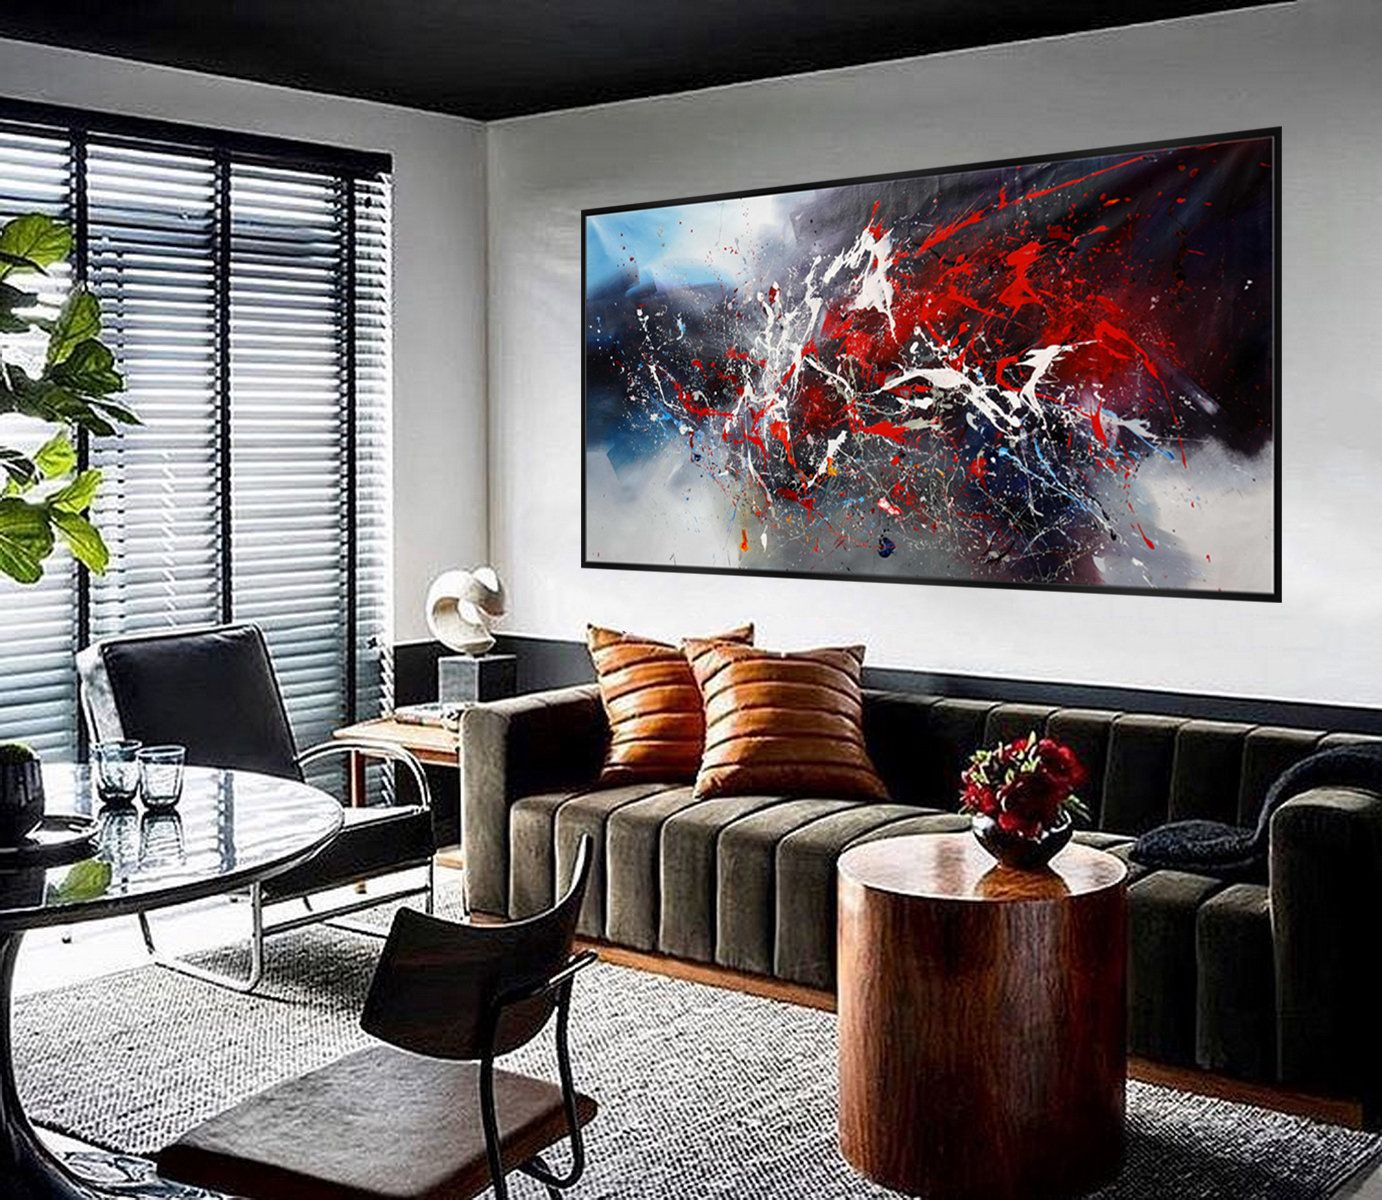 Black Red Colorful Acrylic Abstract Art Work Extra Large Modern Living Room Wall Decor Artwork Painting 48x96 120x240cm Living Room Art Room Wall Decor Living Room Paint #red #paintings #for #living #room